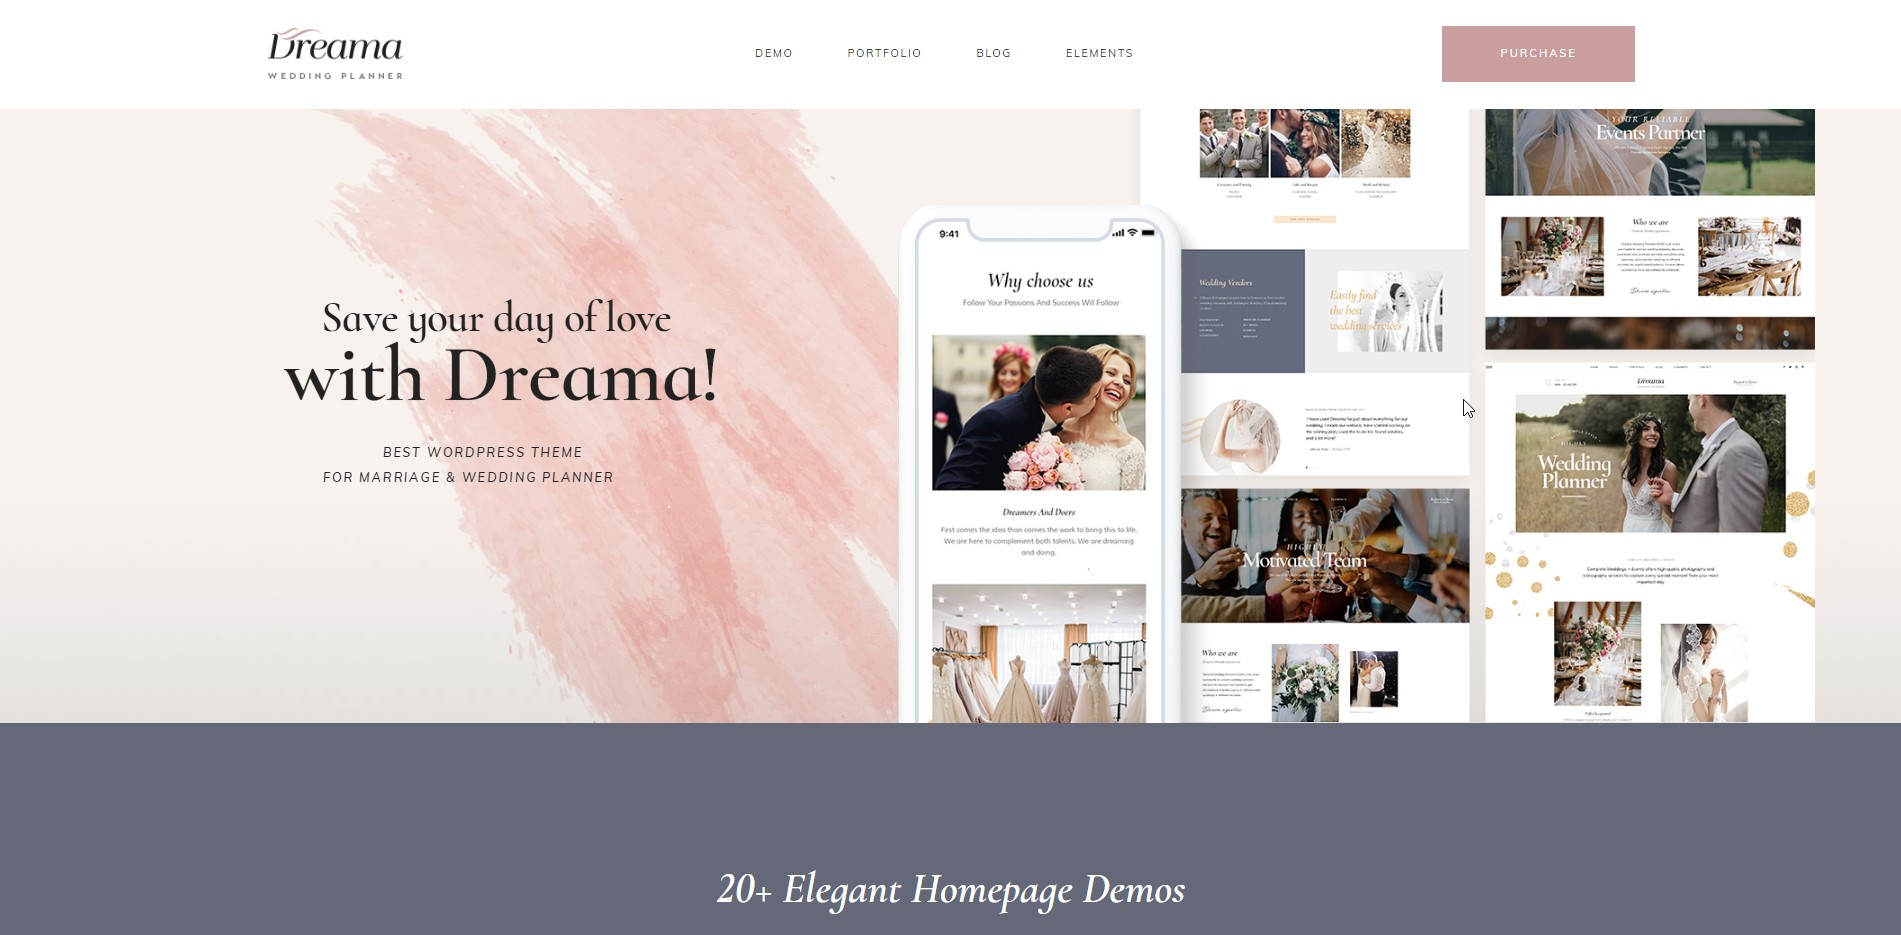 Dreama-Wedding-WooCommerce-WordPress-Theme